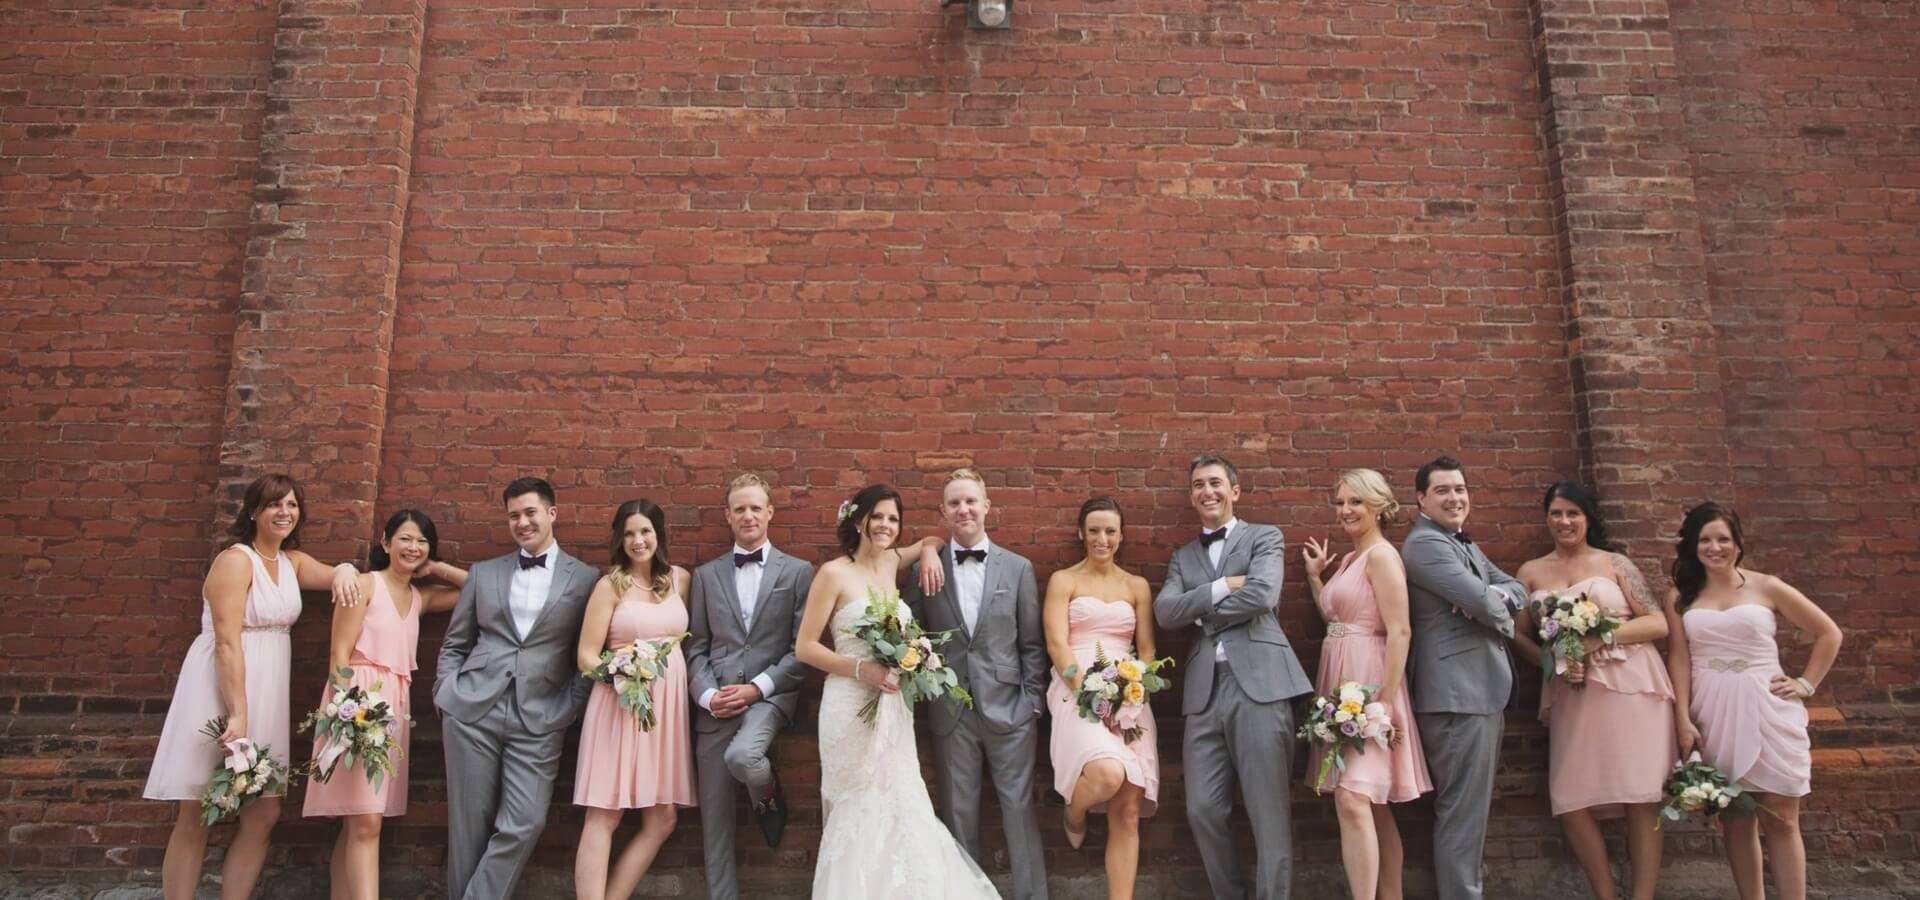 Hero image for Victoria and James' Romantic Urban Wedding at The Burroughes